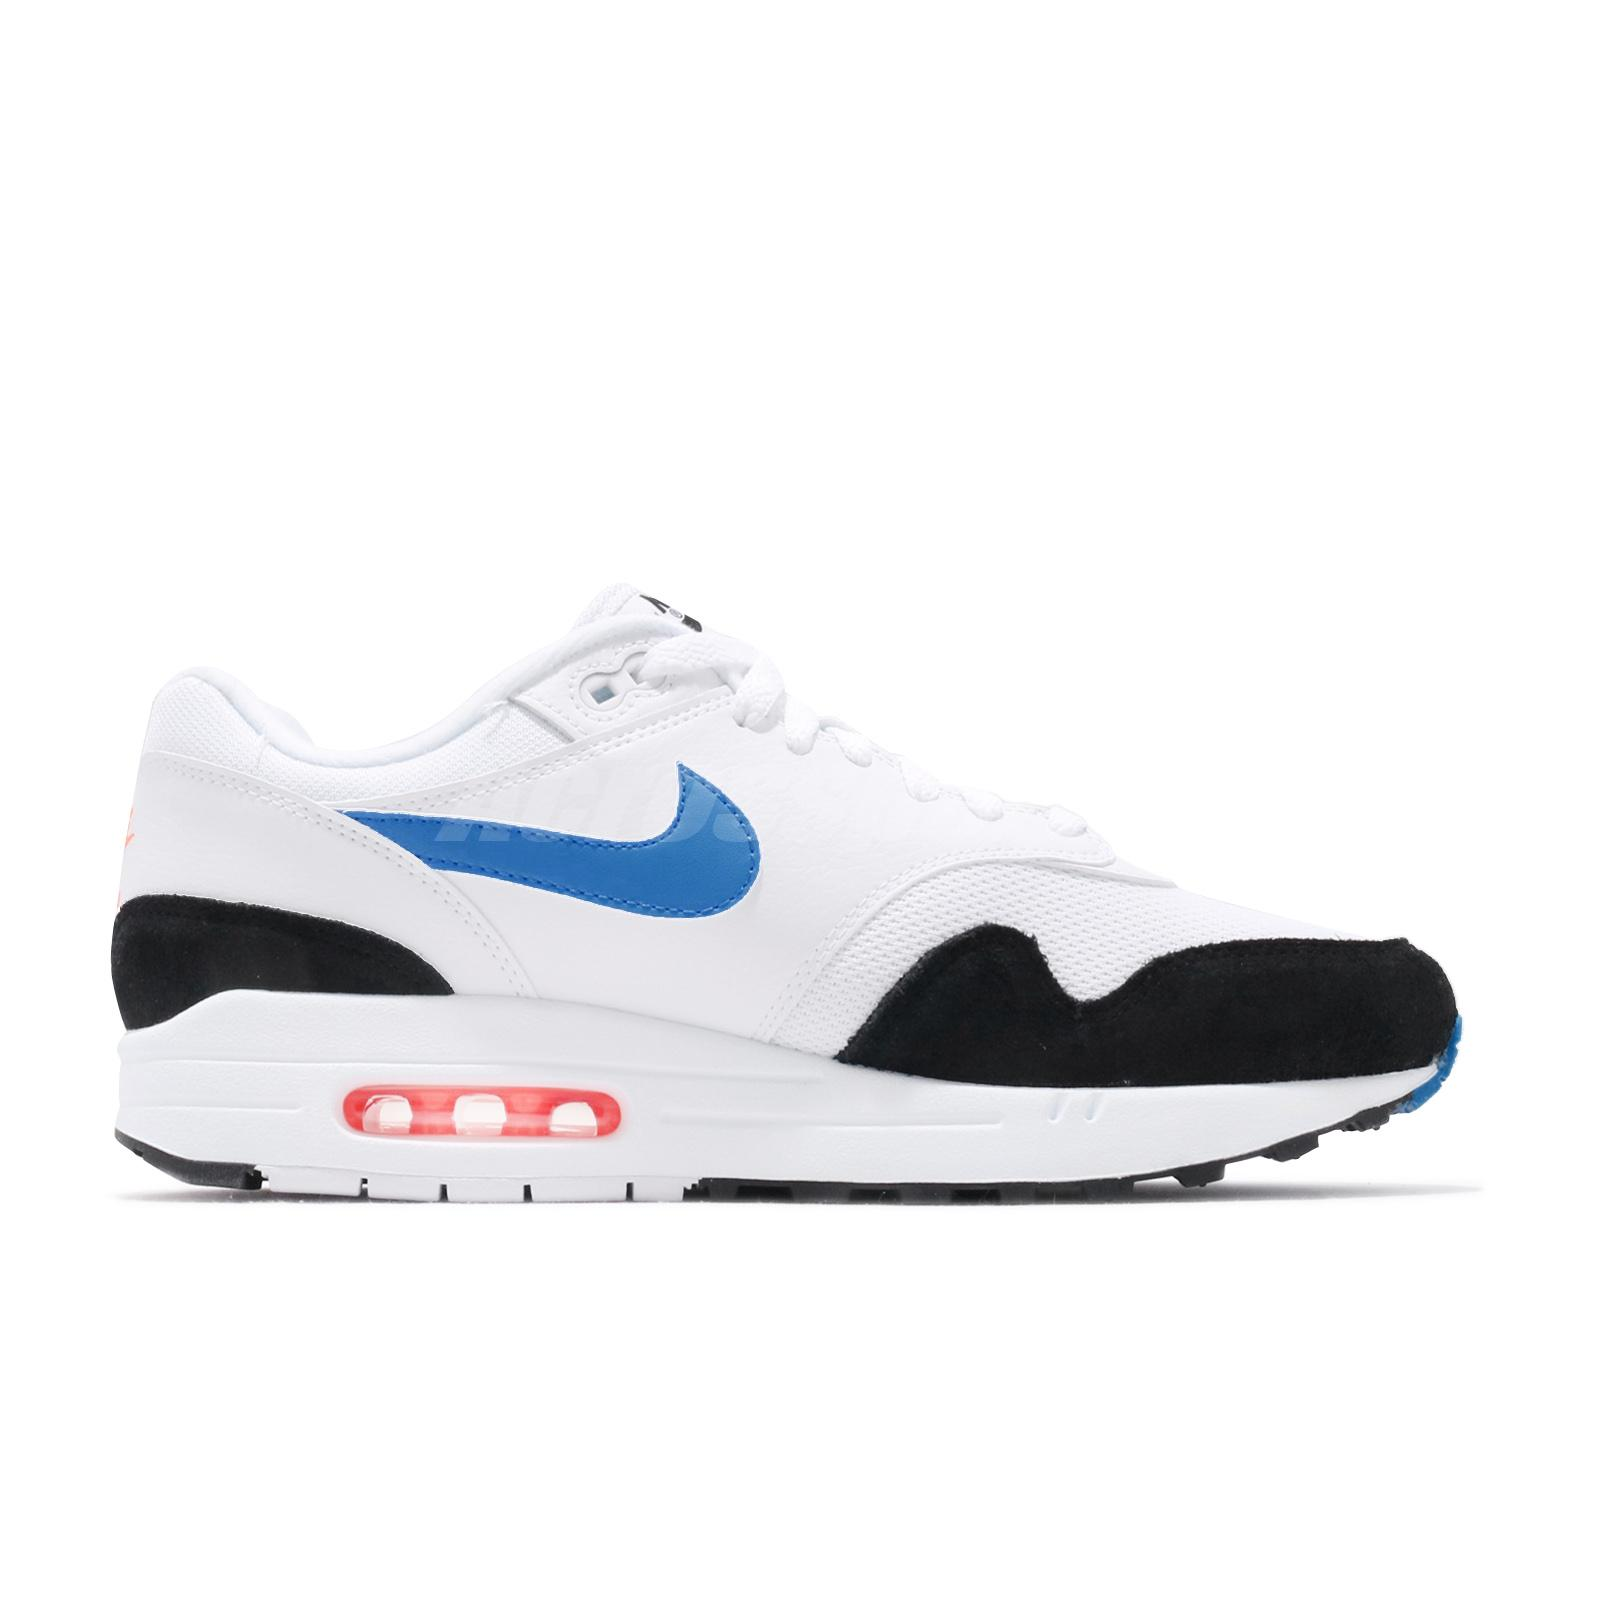 Details about Nike Air Max 1 White Blue Orange Mens Lifestyle Running Shoes NSW AH8145 112